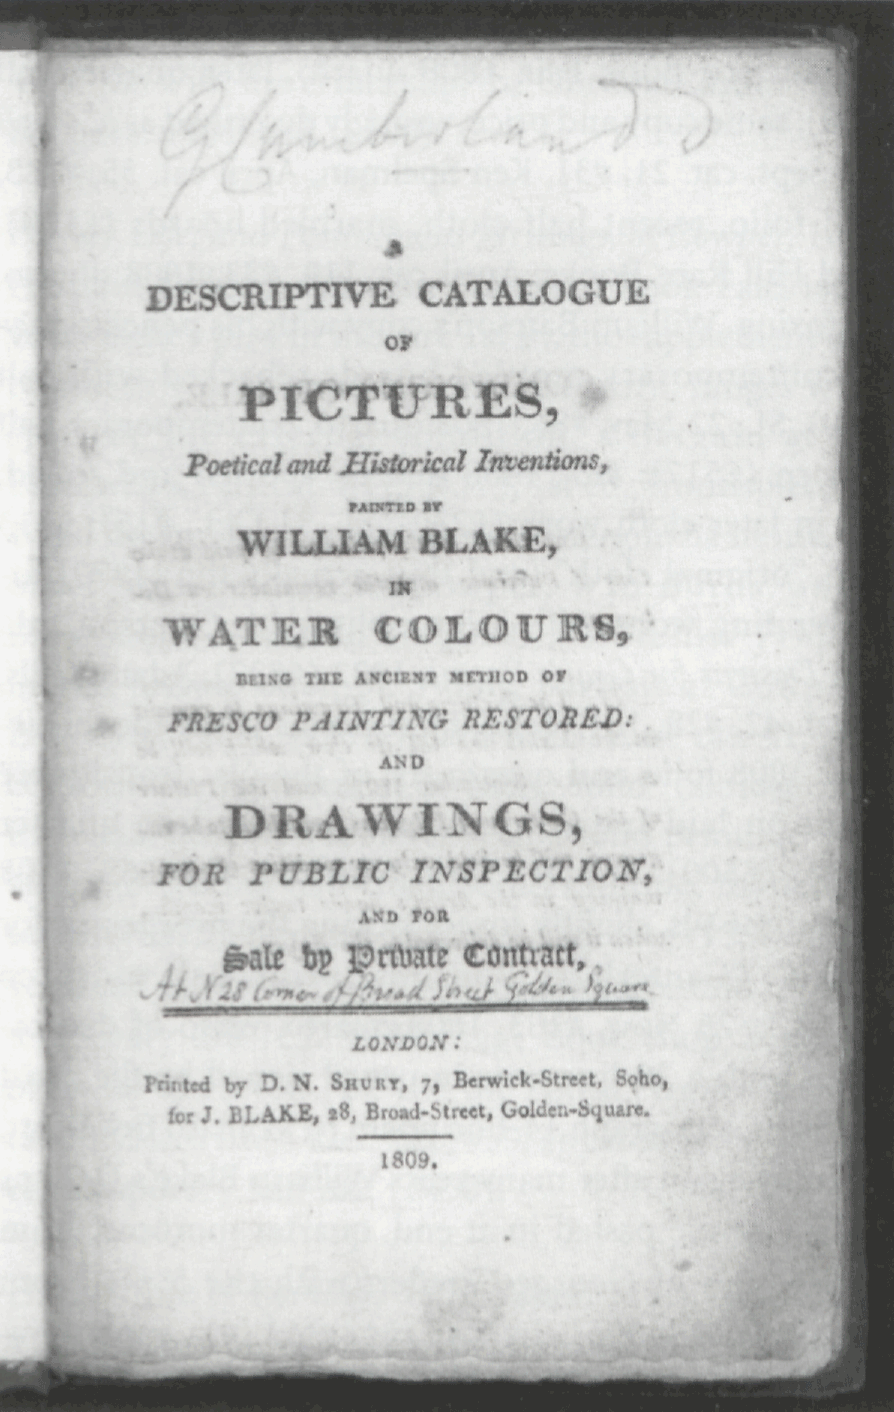 G Cumberland A DESCRIPTIVE CATALOGUE OF PICTURES, Poetical and Historical Inventions, PAINTED BY WILLIAM BLAKE, IN WATER COLOURS, BEING THE ANCIENT METHOD OF FRESCO PAINTING RESTORED AND DRAWINGS, FOR PUBLIC INSPECTION, AND FOR Sale by Private Contract, At N 28 Corner of Broad Street Golden Square LONDON: Printed by D.N. SHURY, 7, Berwick-Street, Soho, for J. BLAKE, 28, Broad-Street, Golden-Square. 1809.